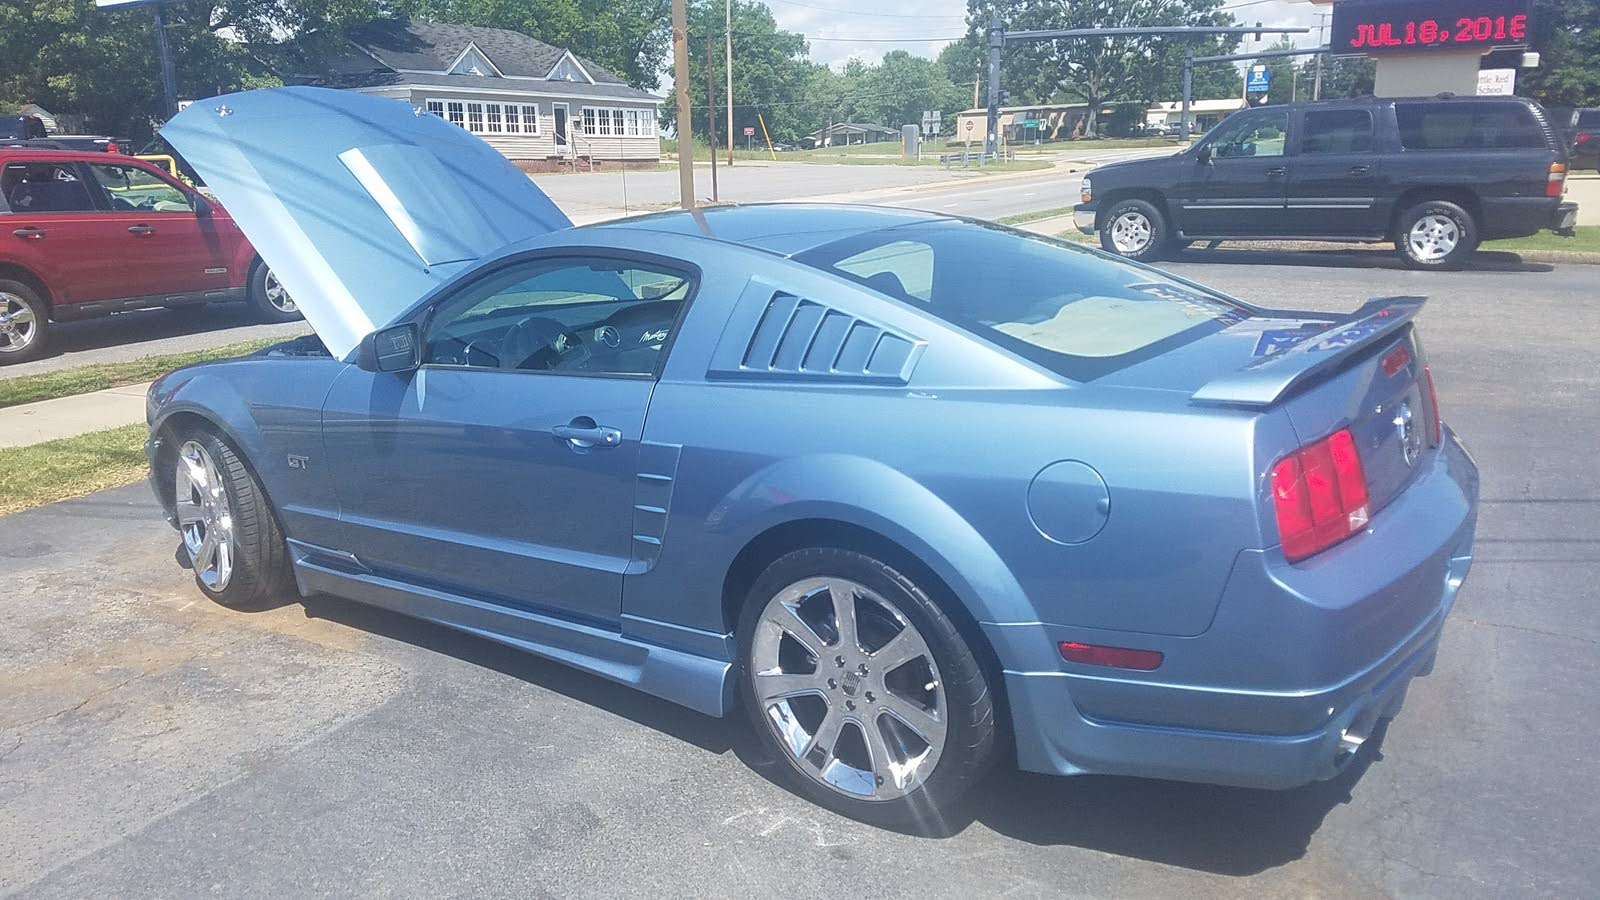 Wondering if anyone can tell me what type of body kit is on my mustang and where to get replacement parts